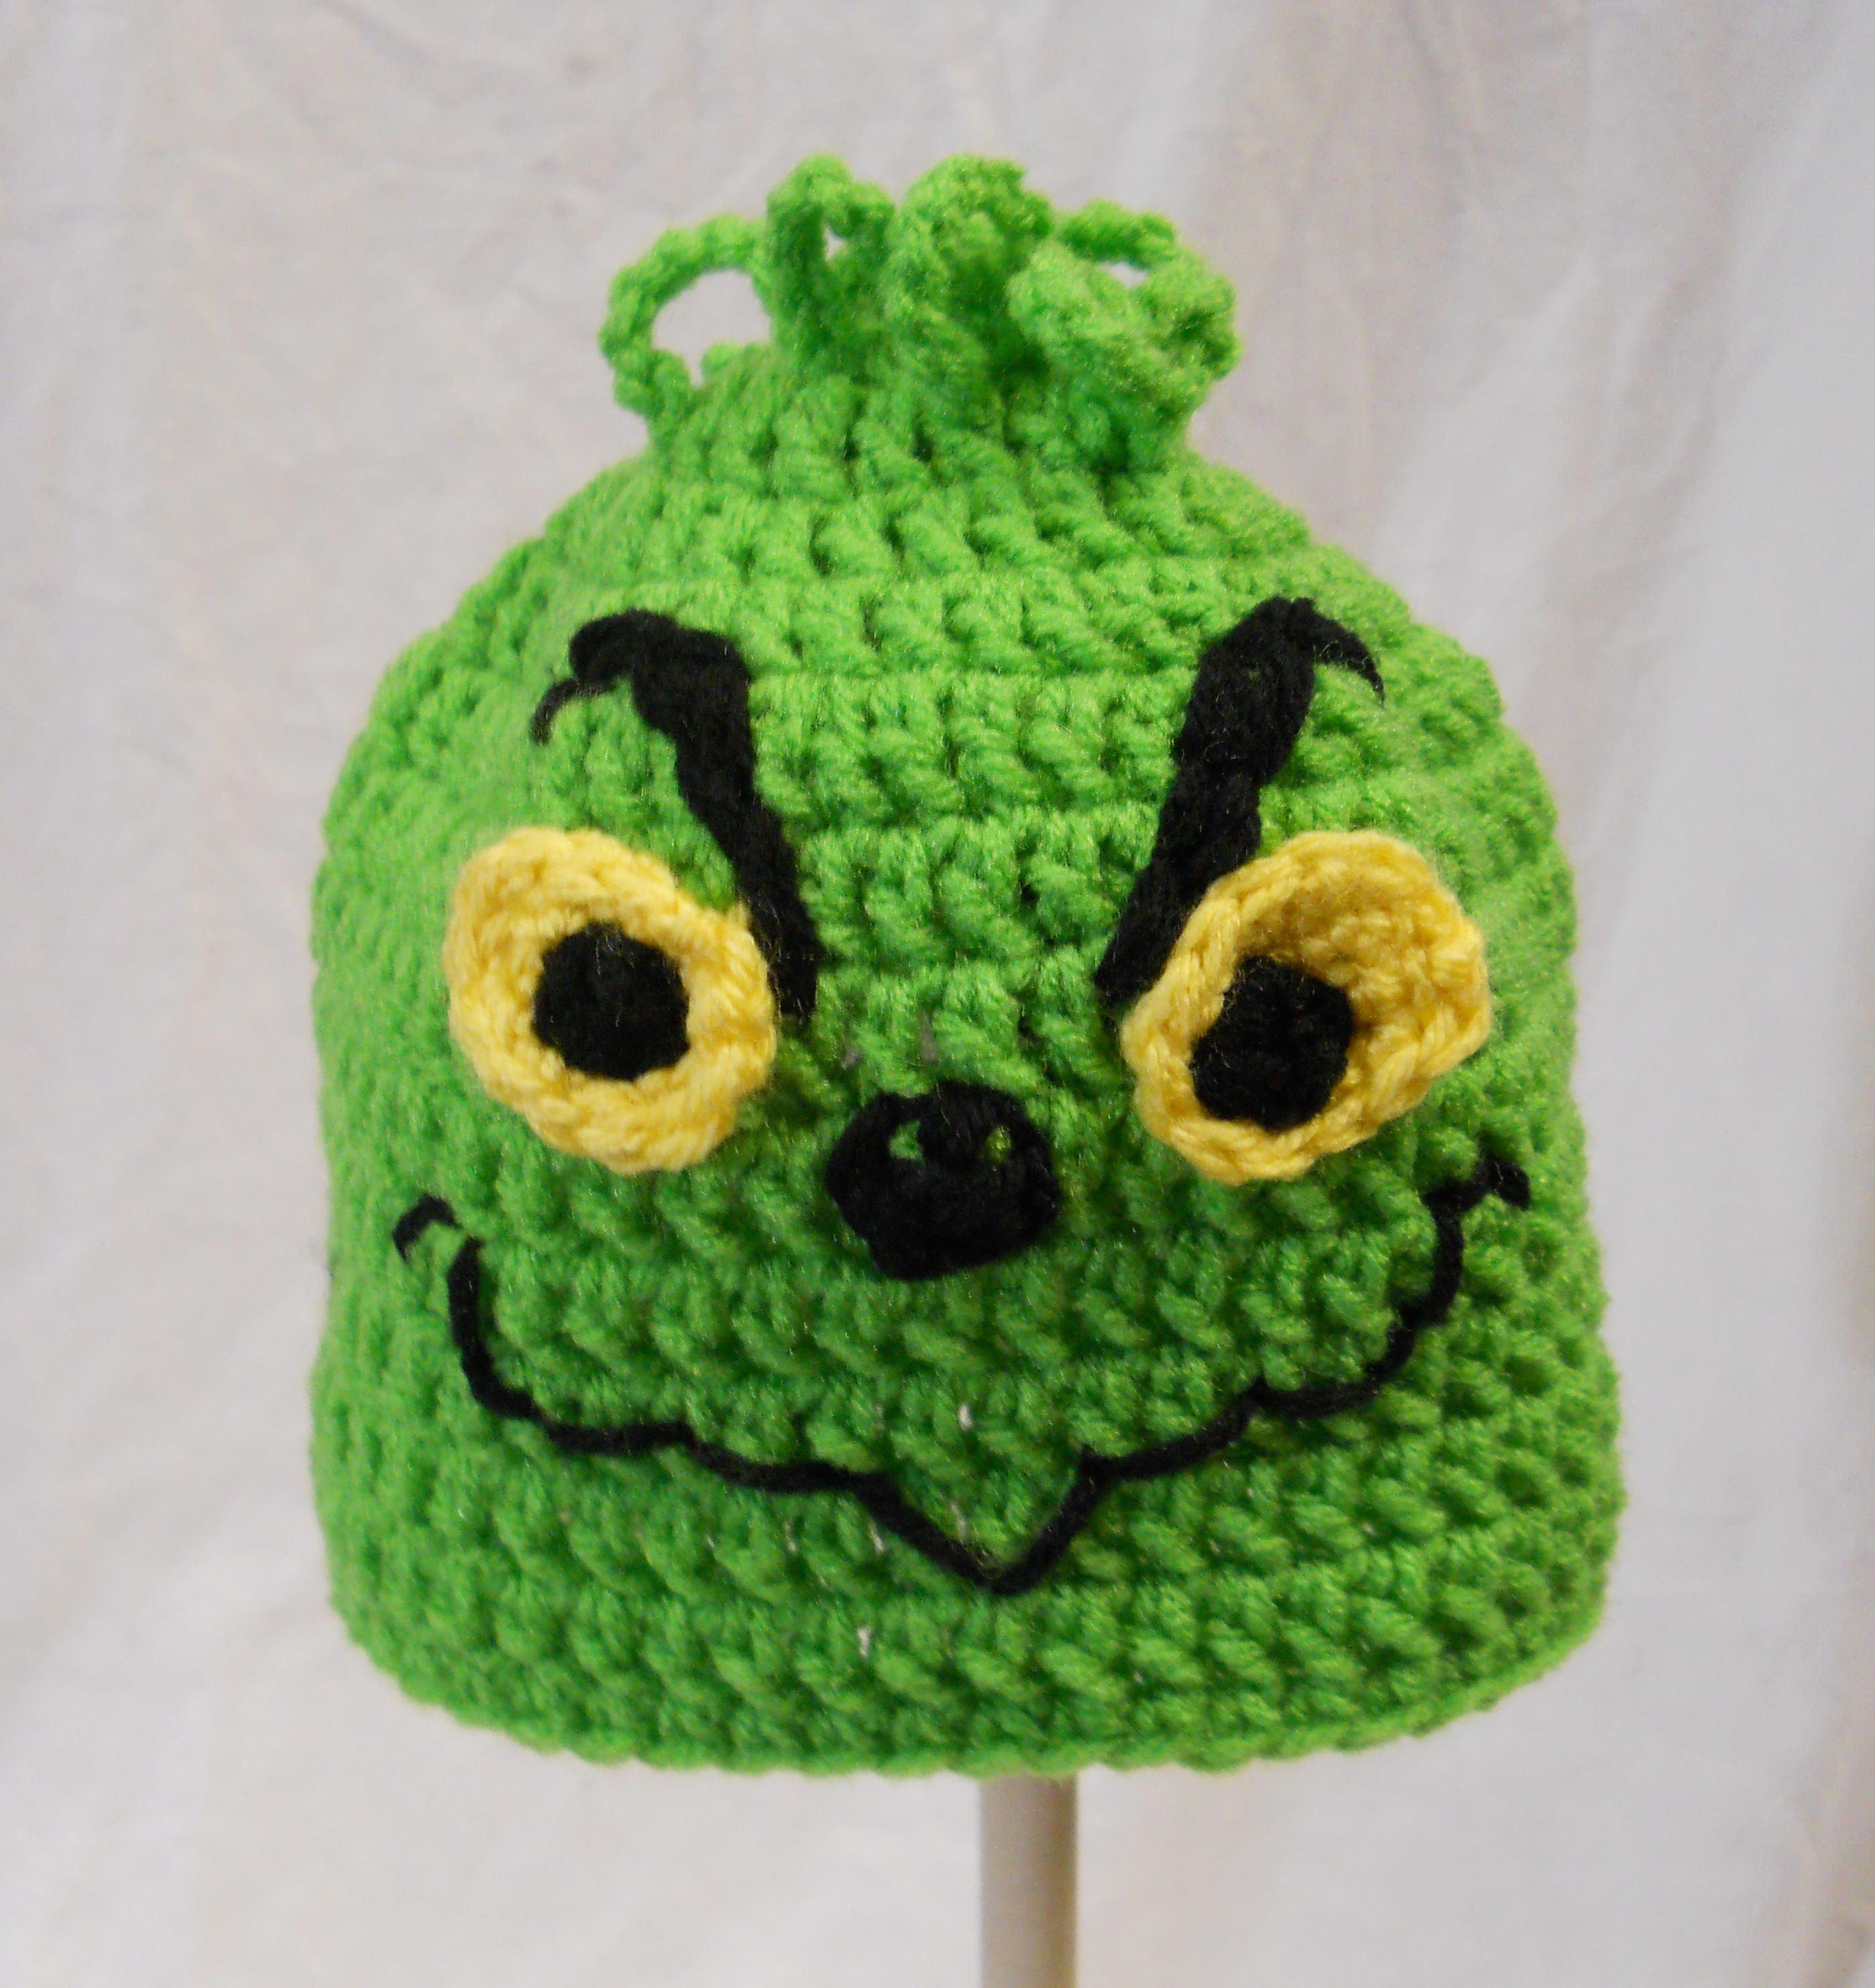 Crochet Grinch Hat Crochet Things I Have Made Pinterest